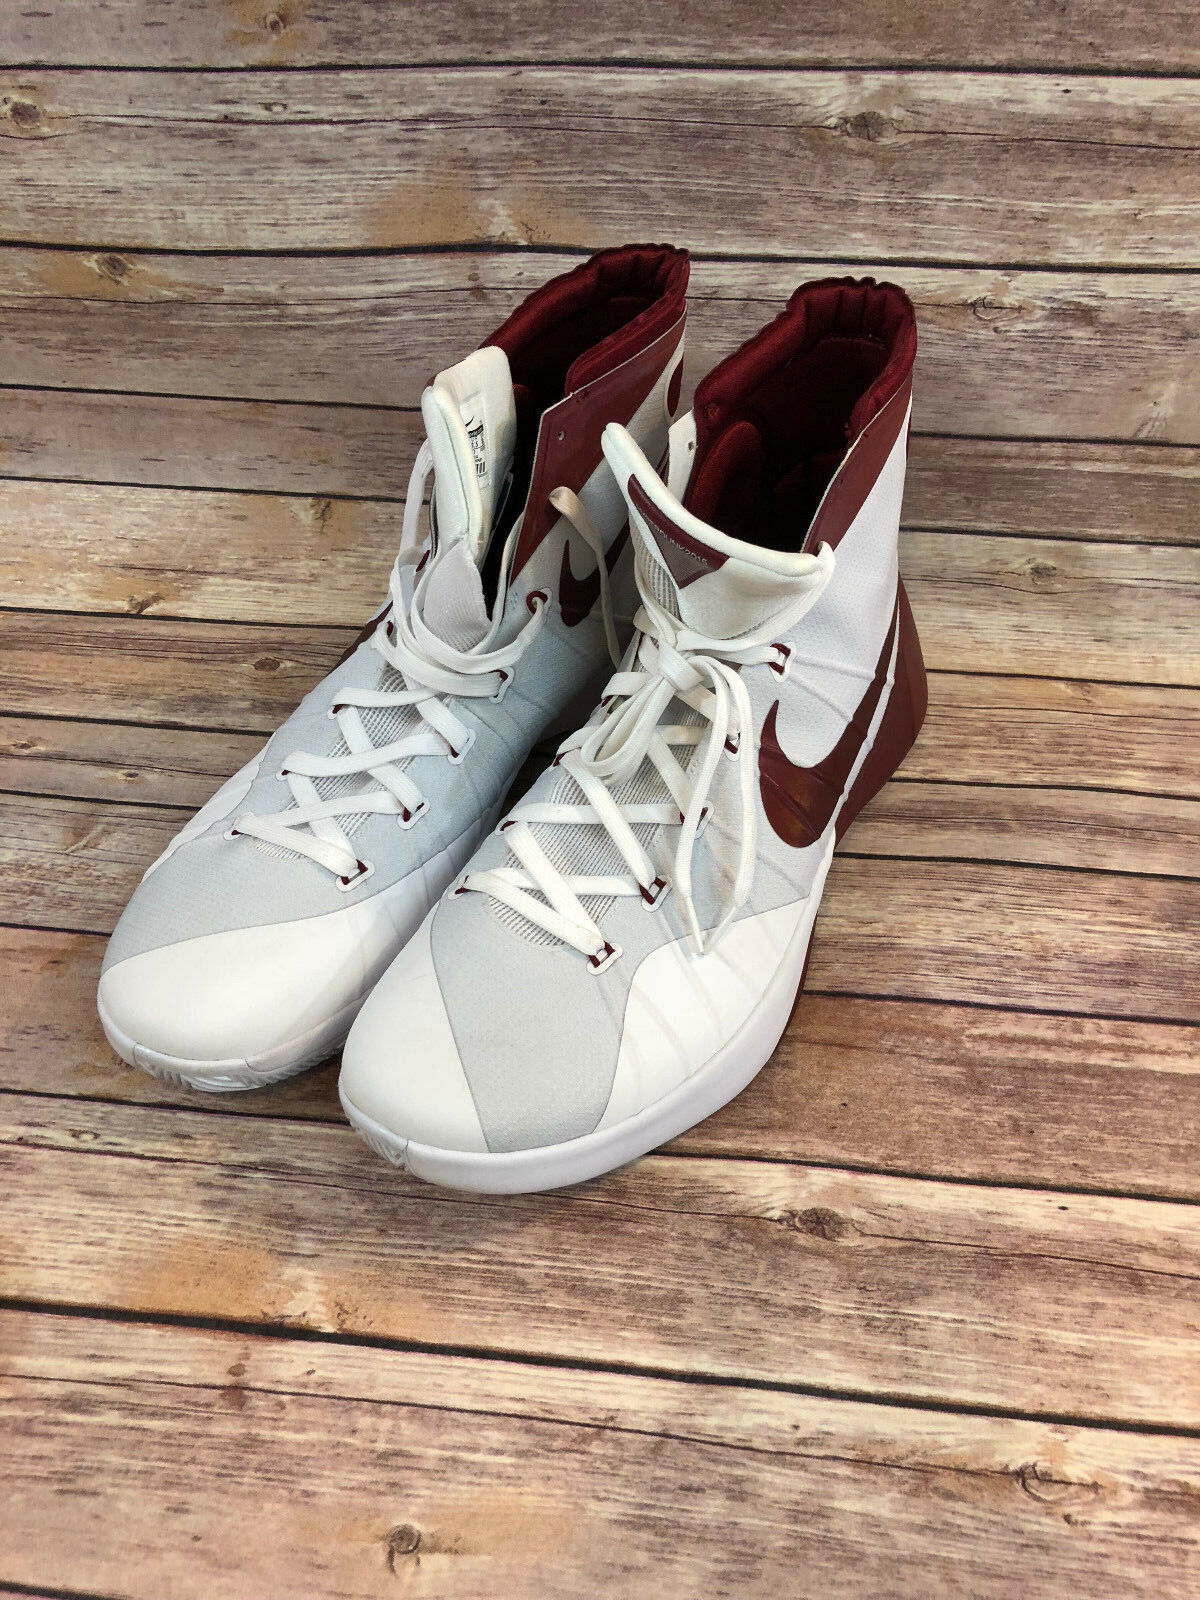 Nike Mens Hyperdunk 2015 TB Basketball shoes 812944 161 Red US 16 NEW